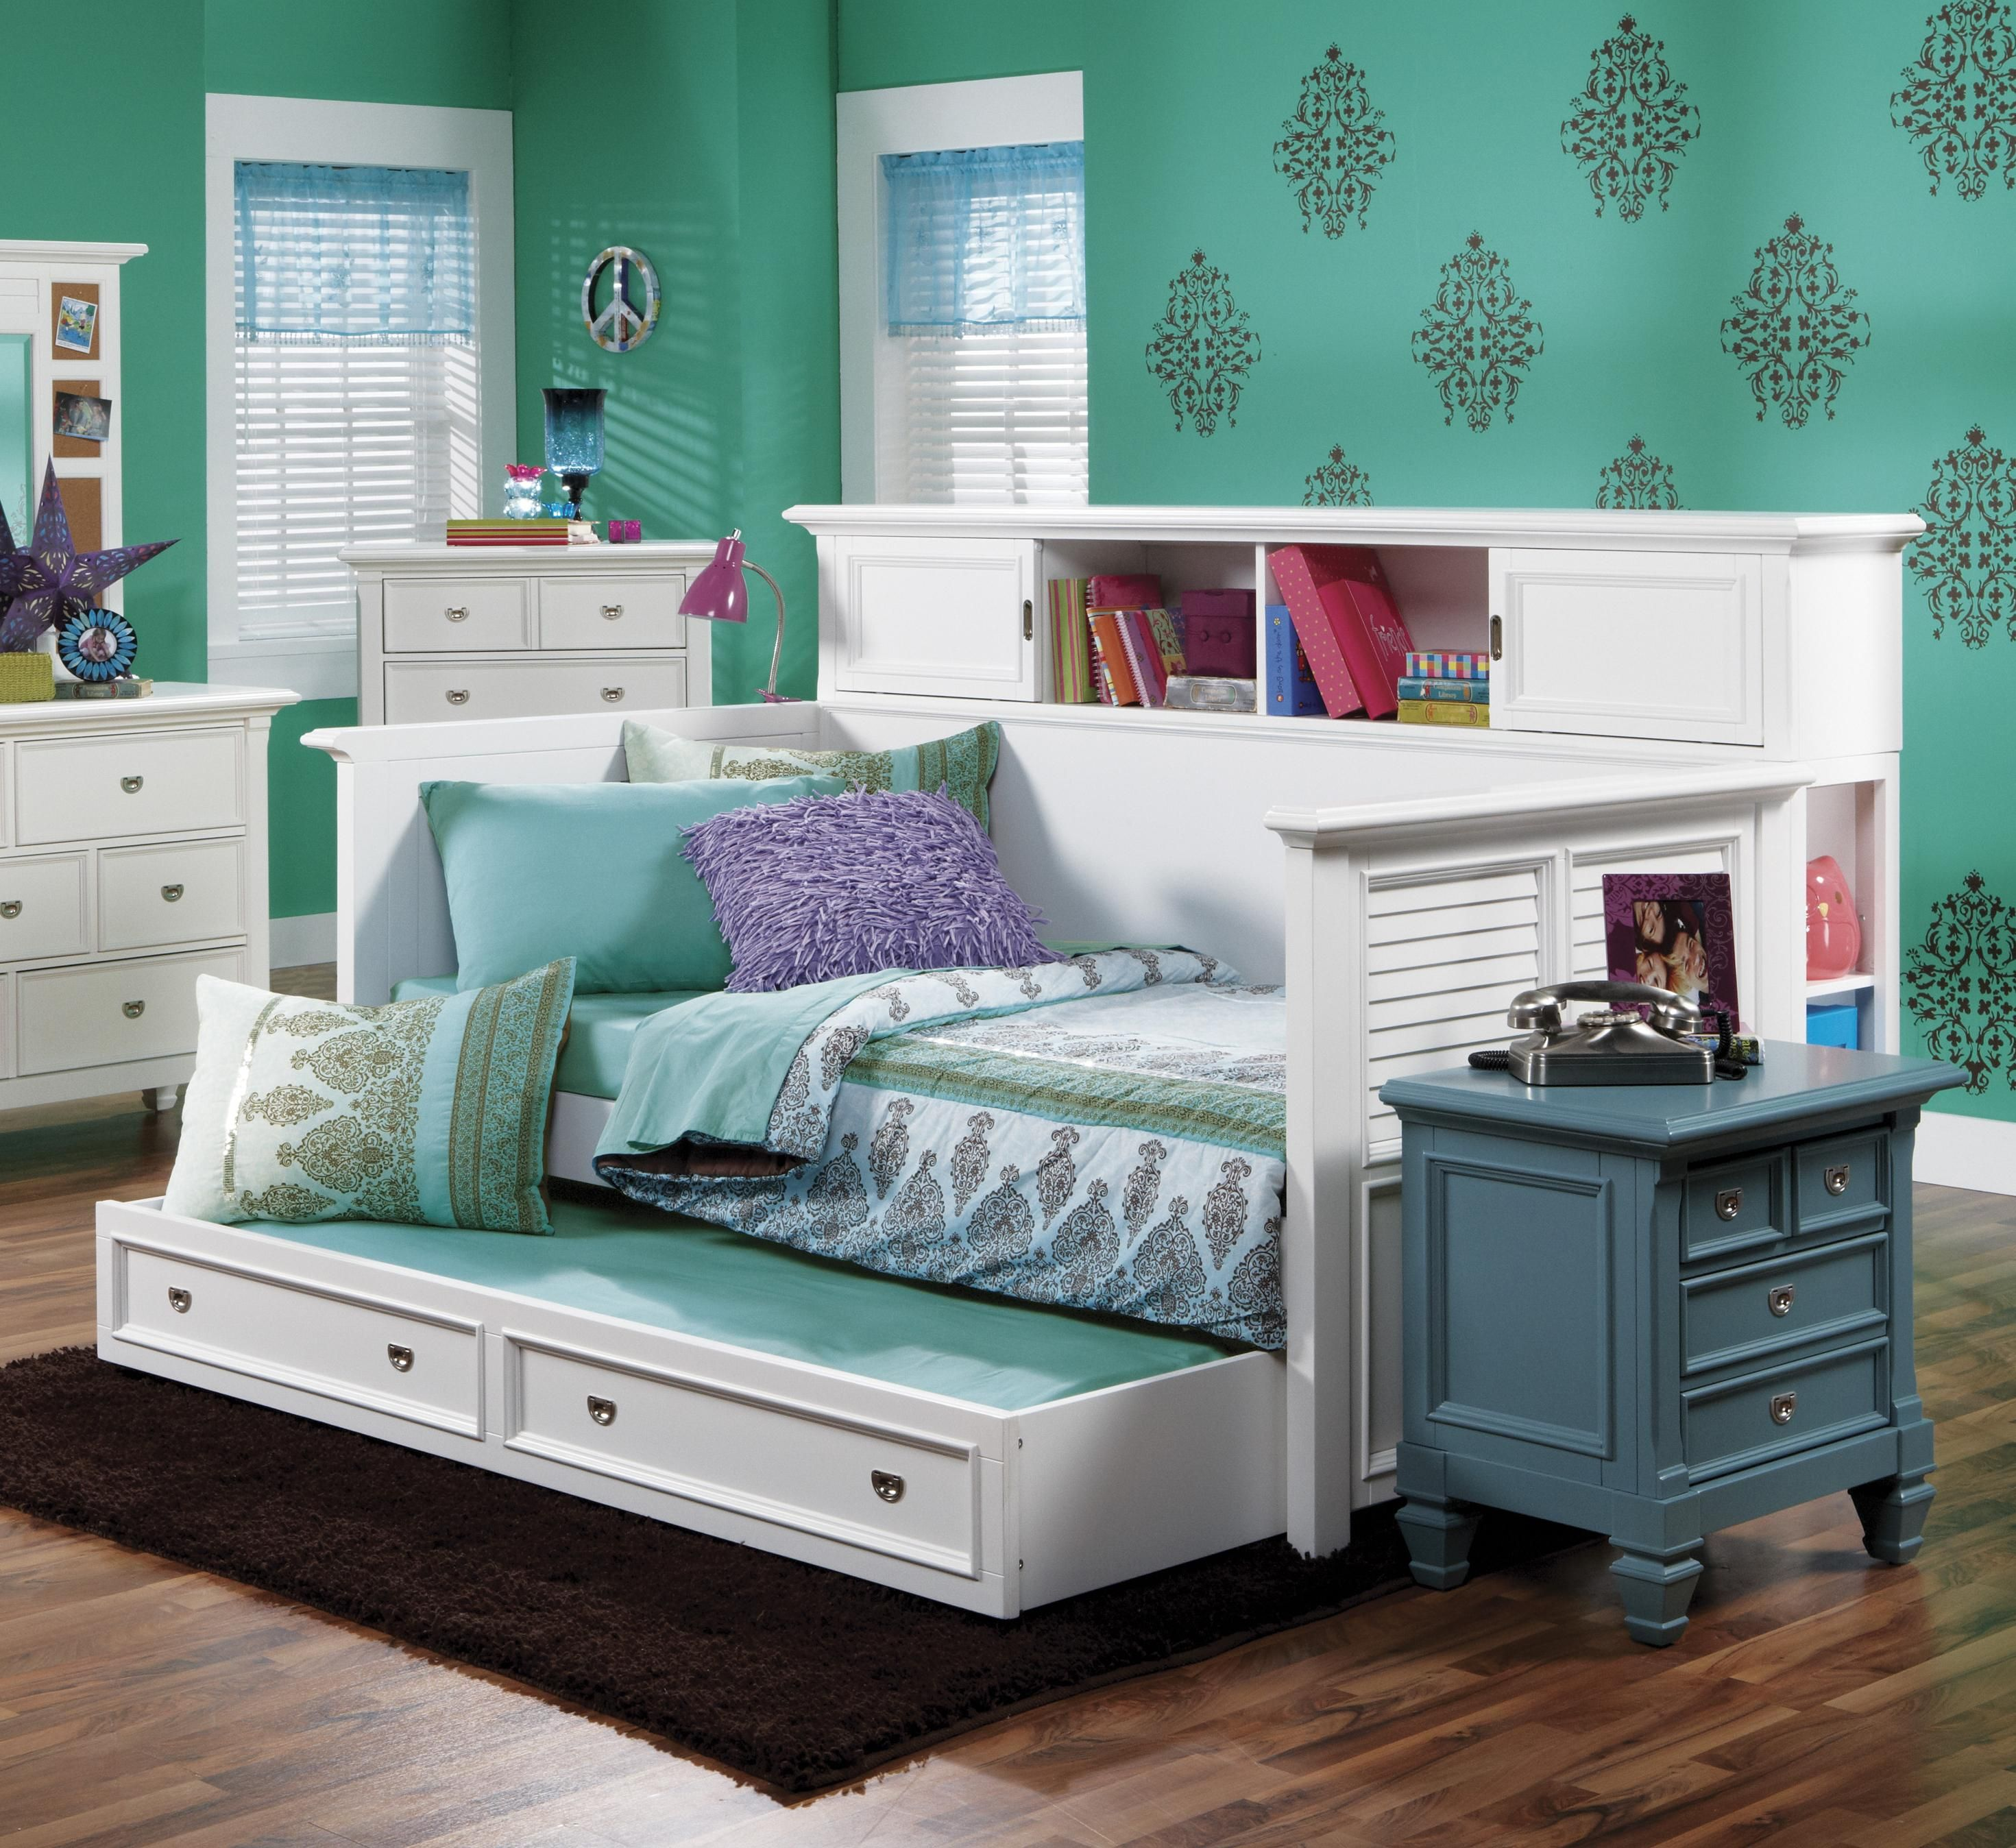 White trundle bed for girls - Modern Style Meets Country Chic With This Berkshire Bookcase Day Bed Perfect Size With A